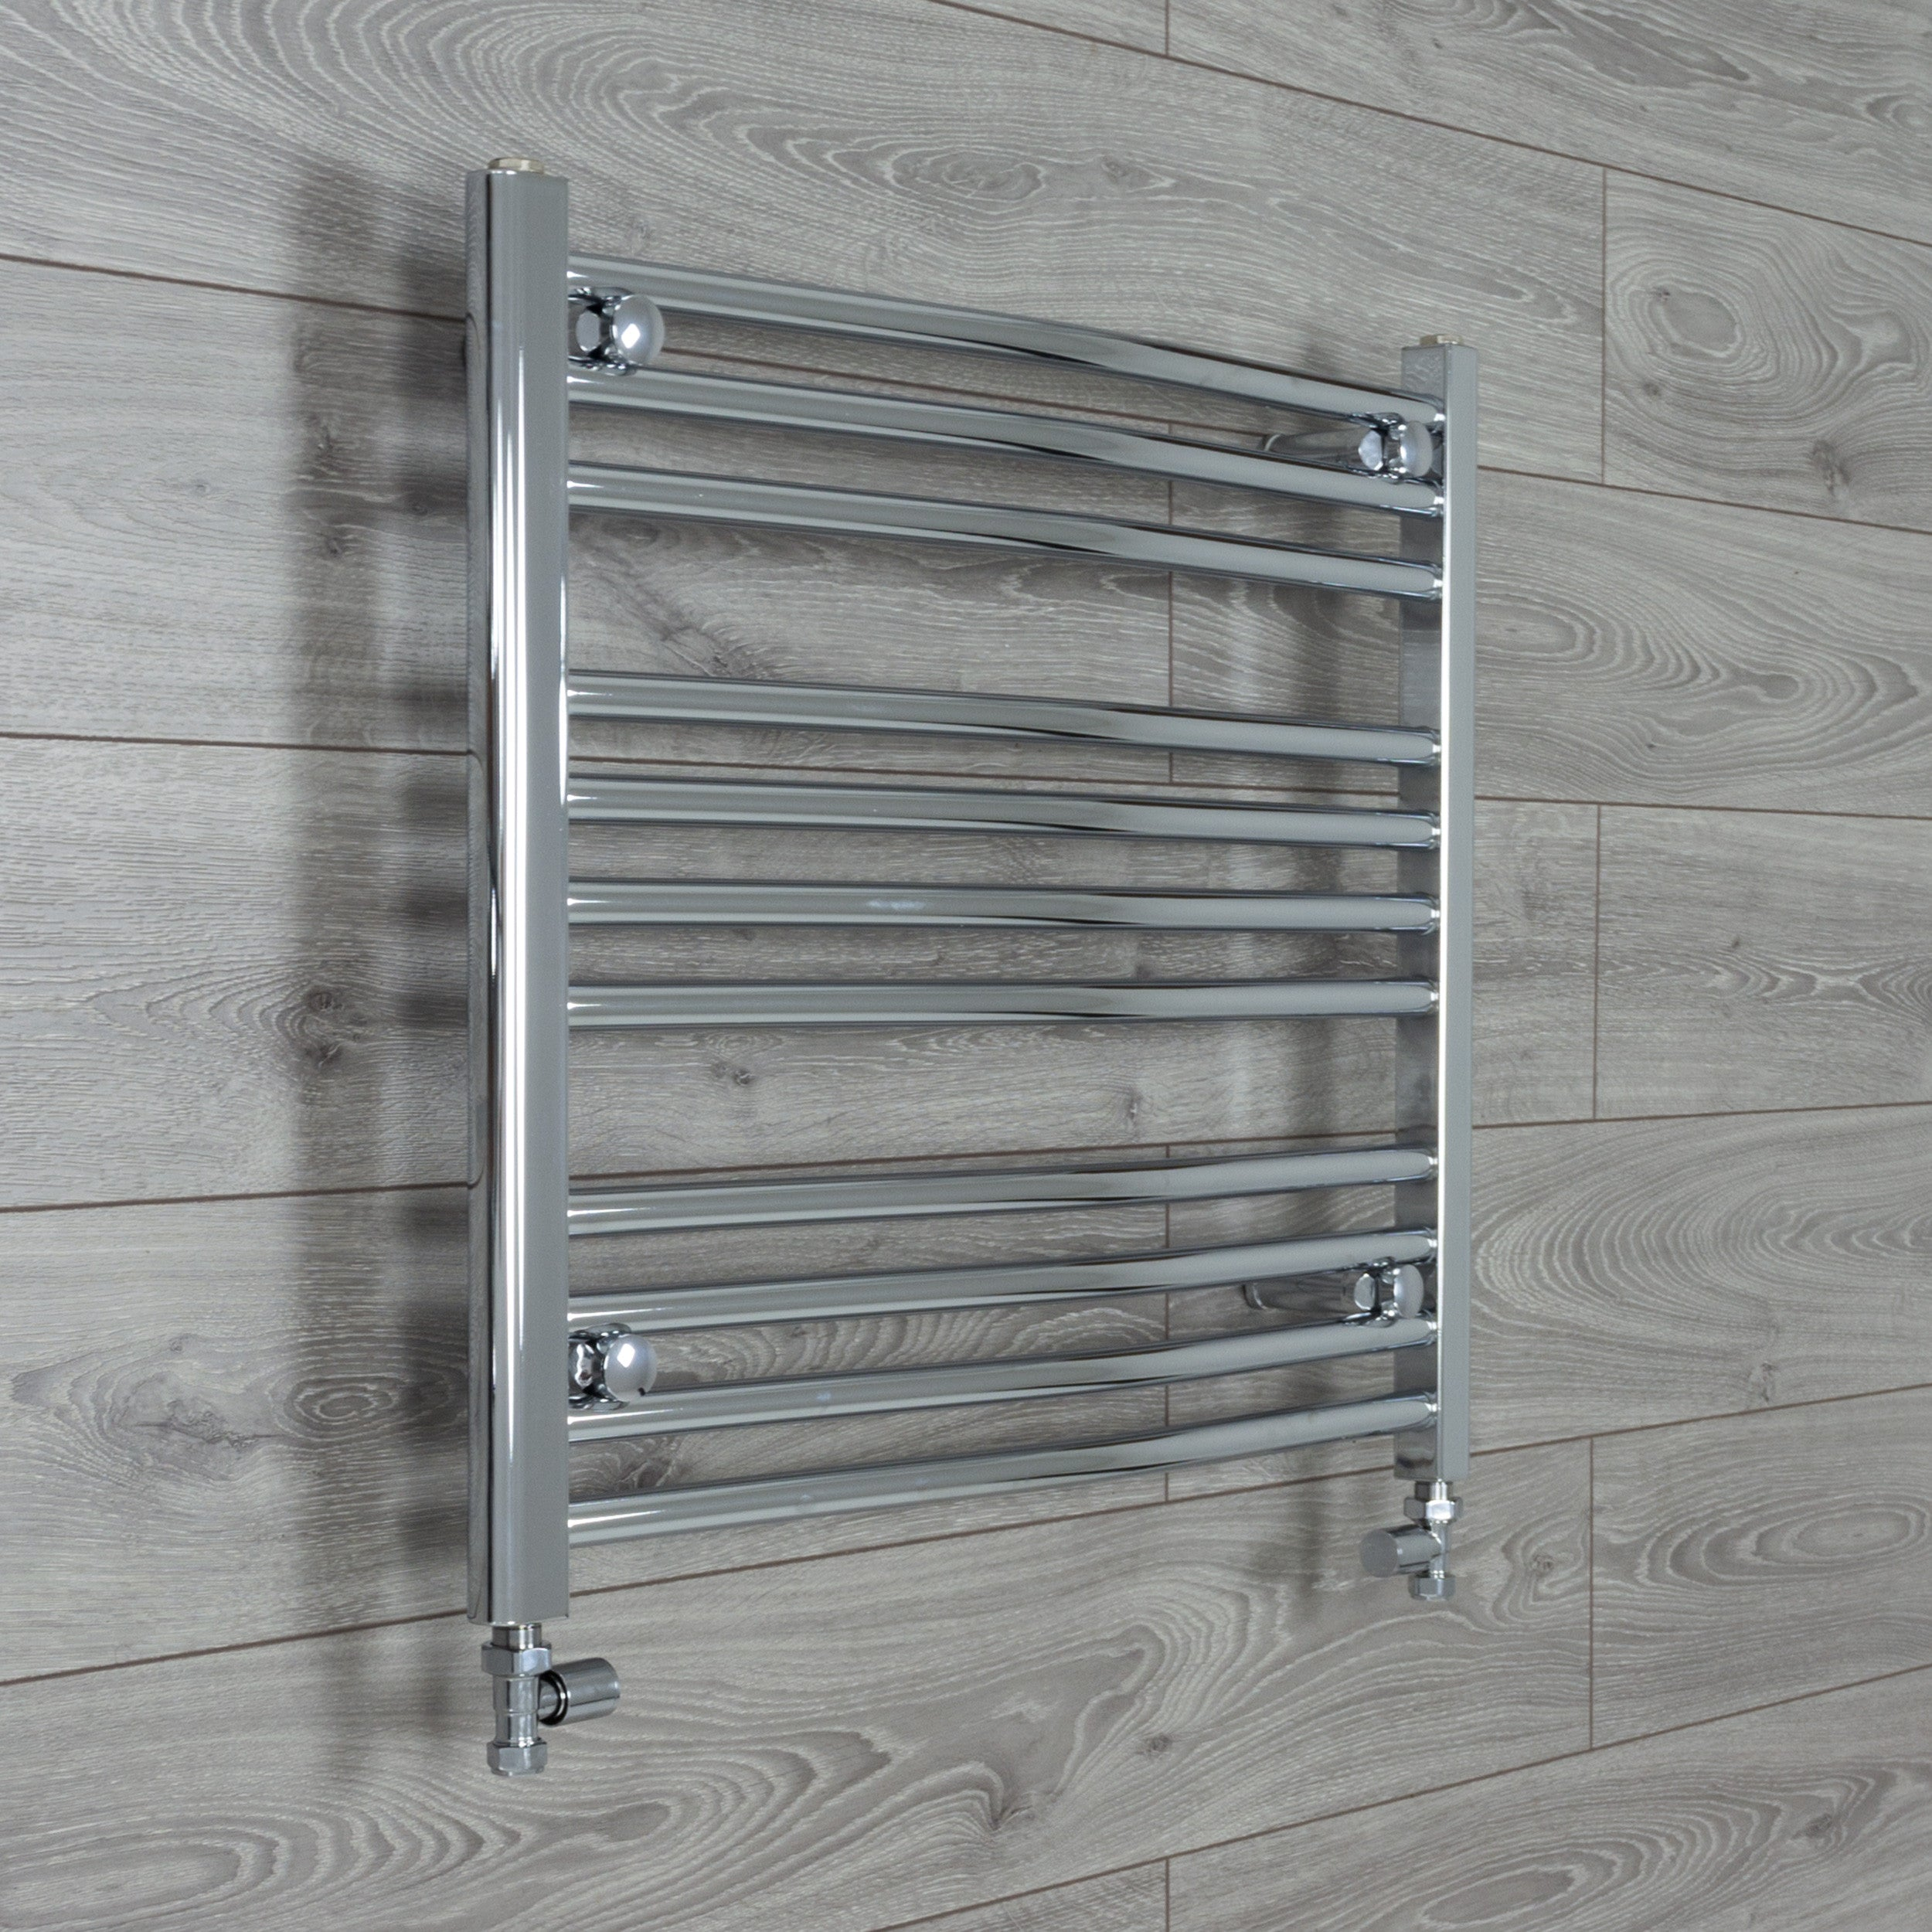 750mm x 600mm High Curved Chrome Towel Rail Radiator With Straight Valve